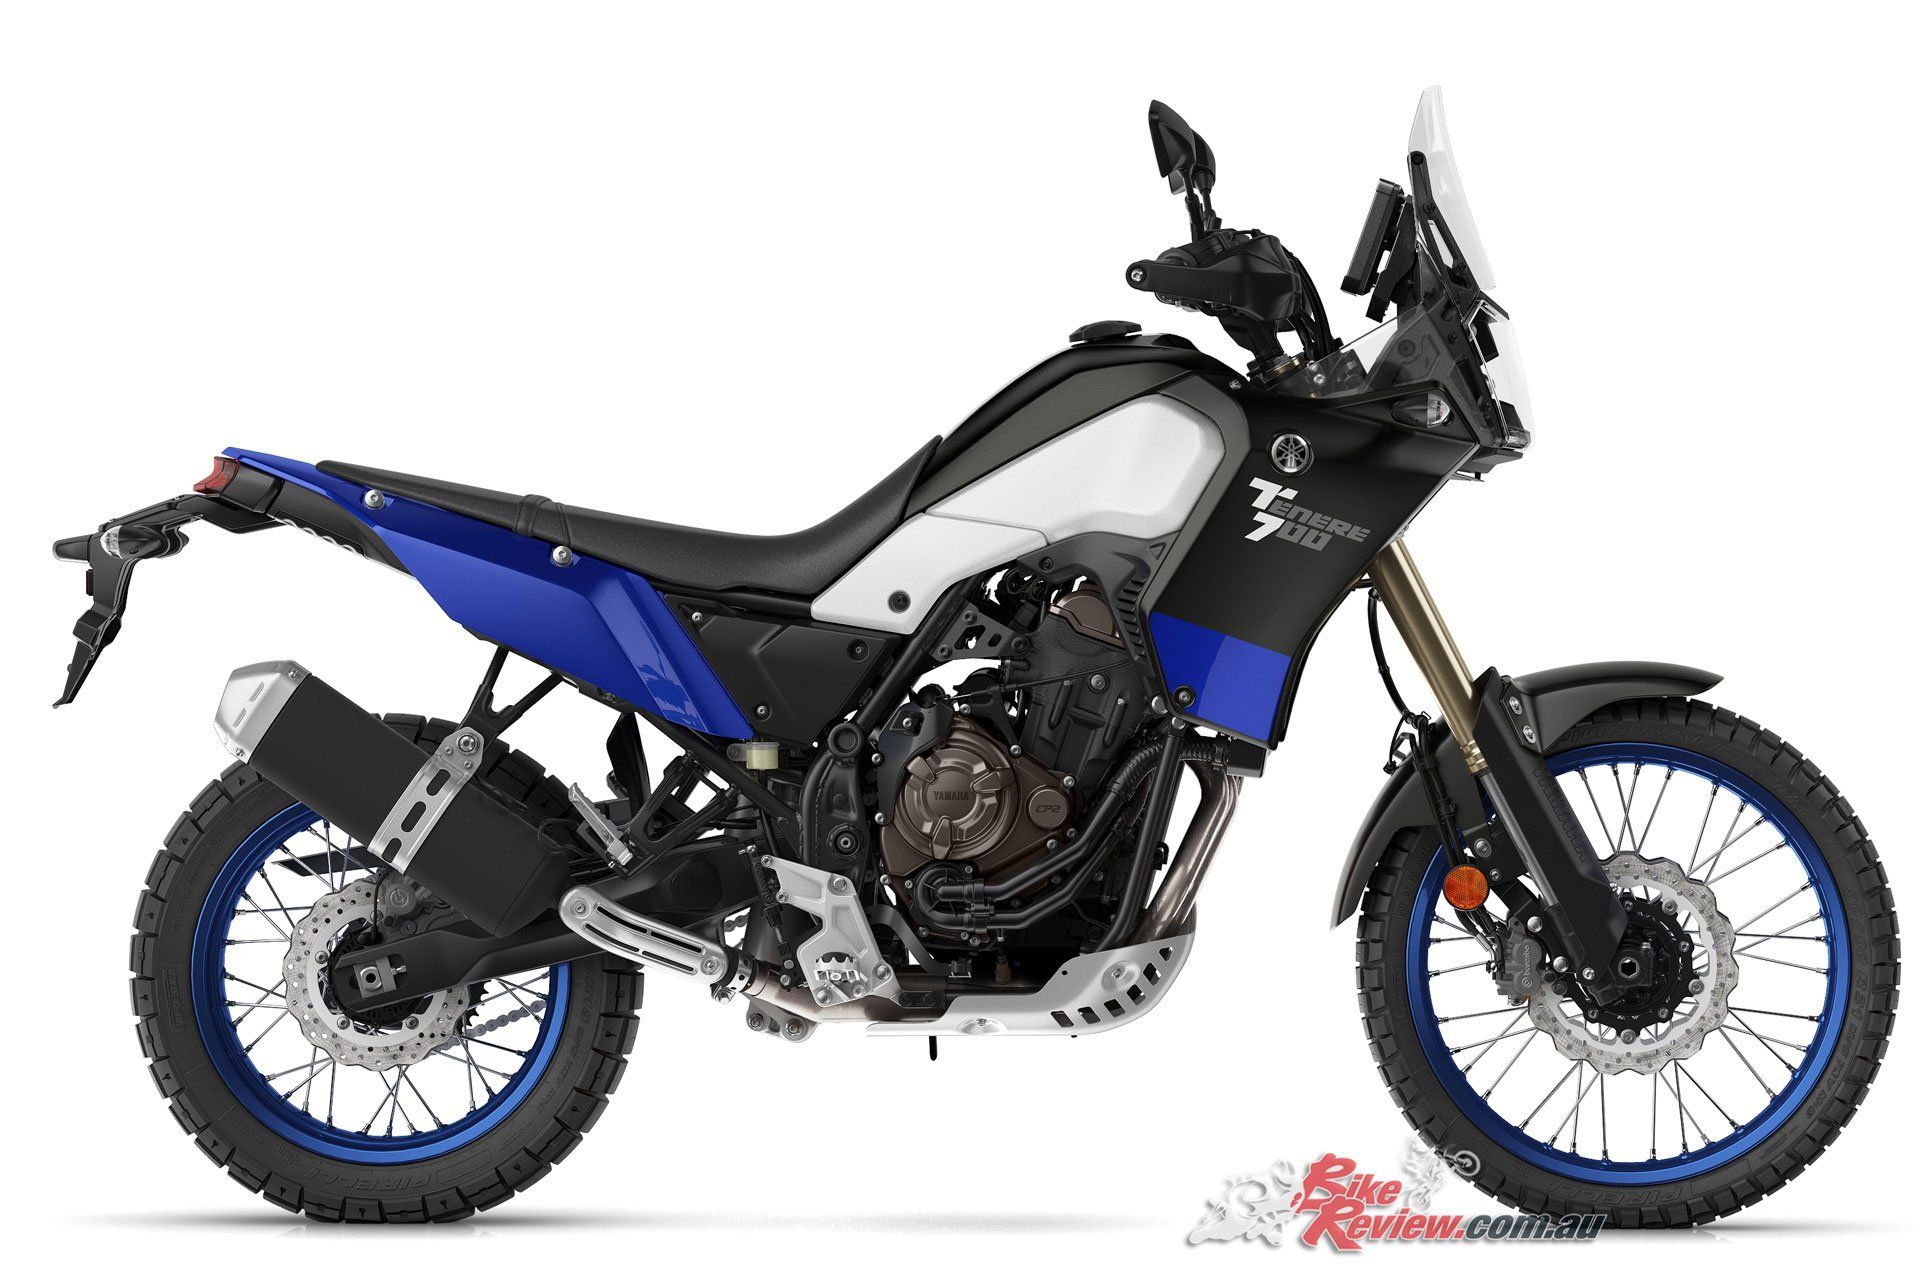 Yamaha T7 2019 Specs And Review From New Model 2019 Yamaha Tenere